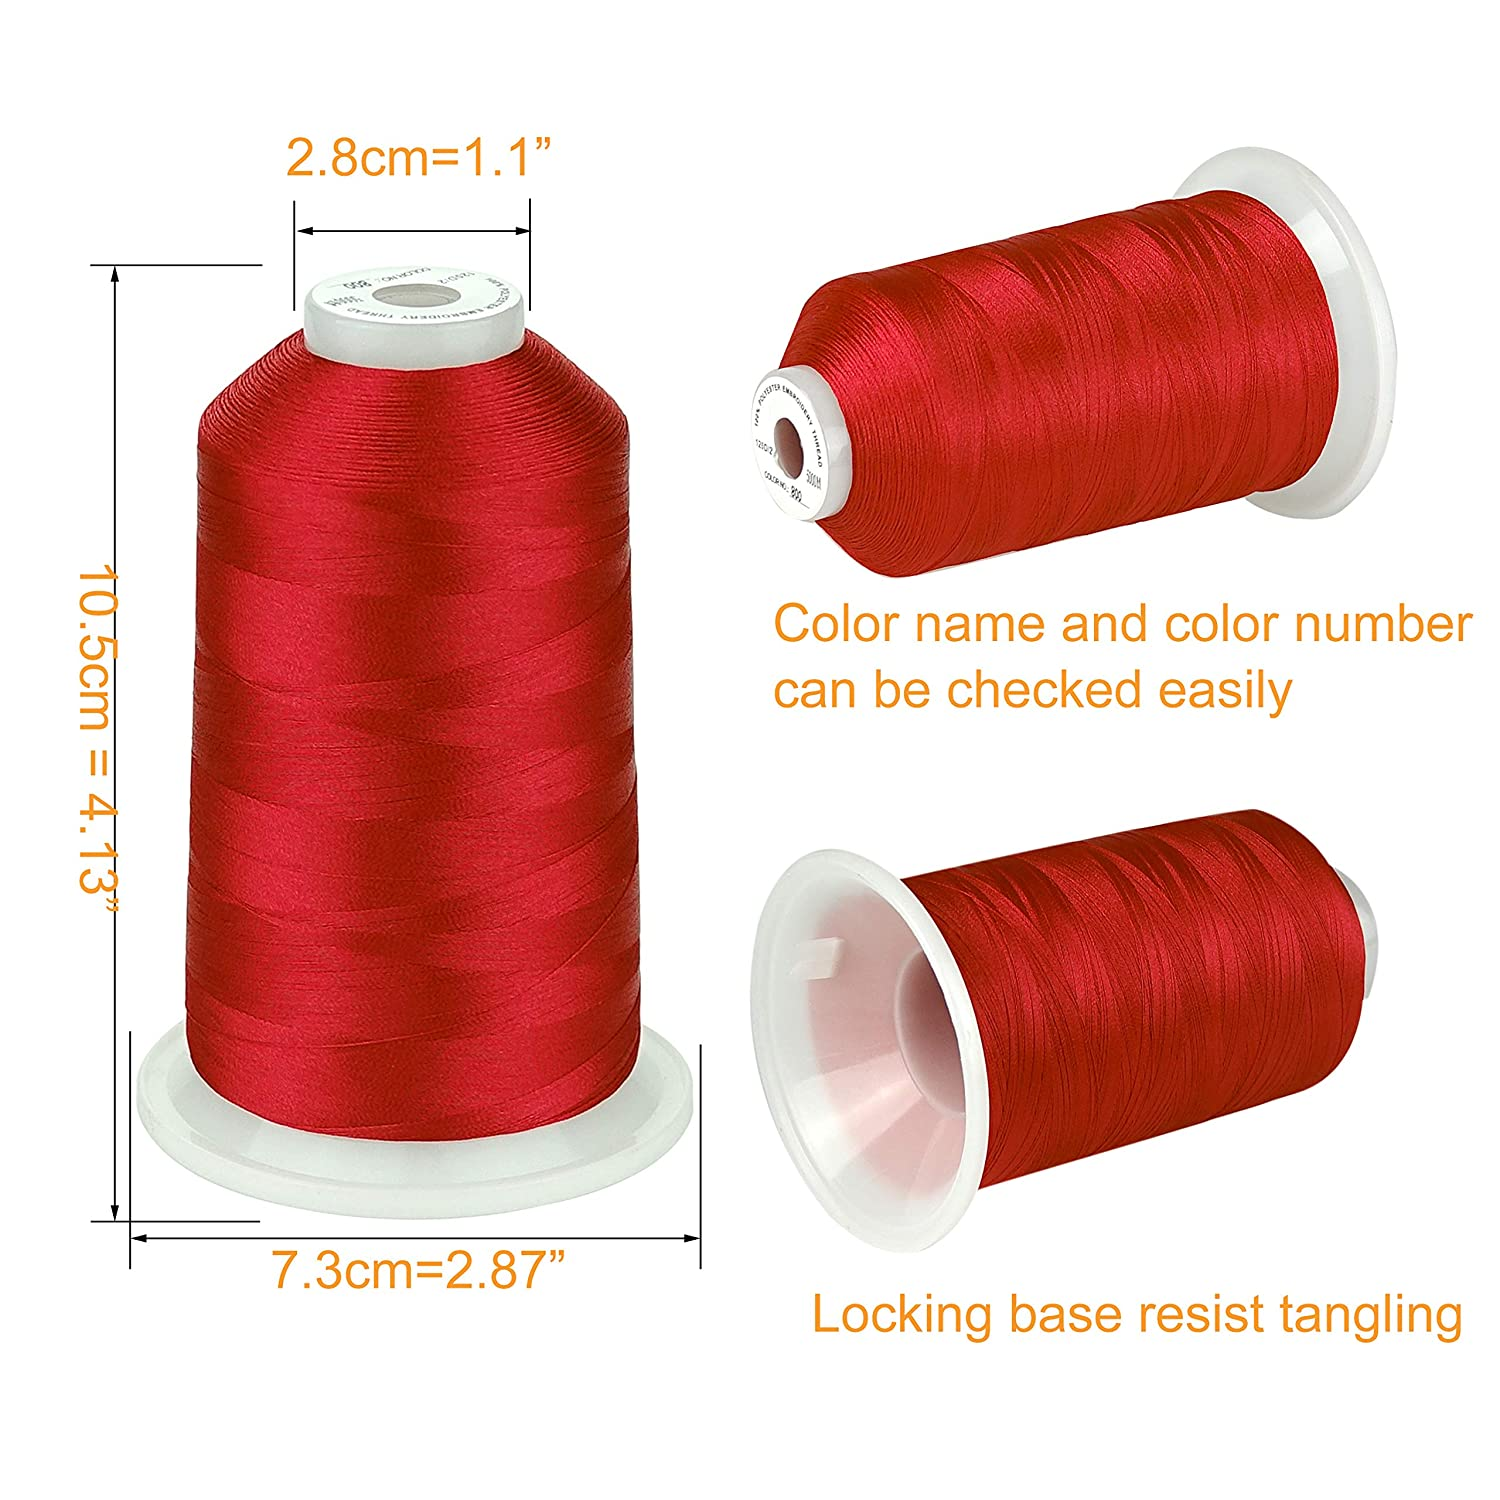 Simthread Essential Color 2 Various Assorted Color Packs of Polyester Embroidery Machine Thread Huge Spool 5500Y for Sewing Embroidery Machines 26 Selections